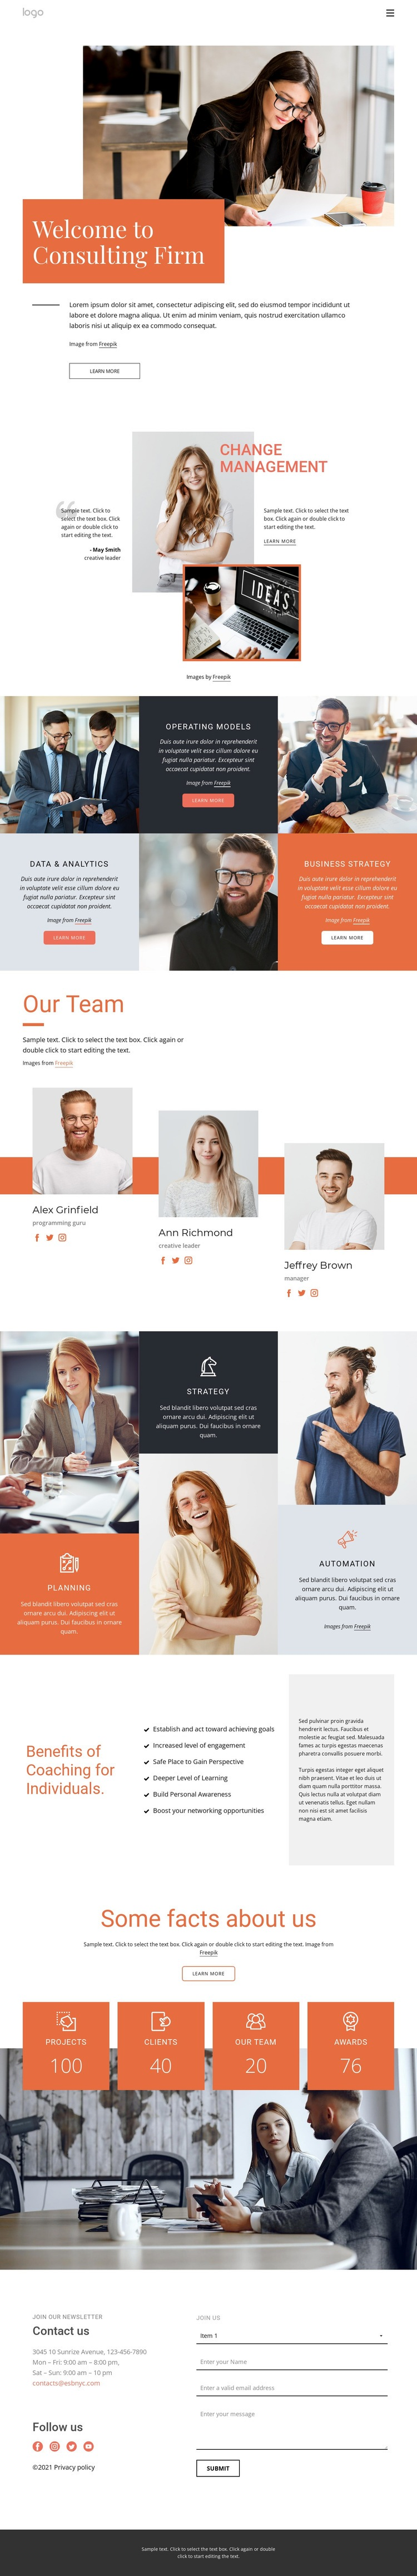 Consulting firm Web Page Designer